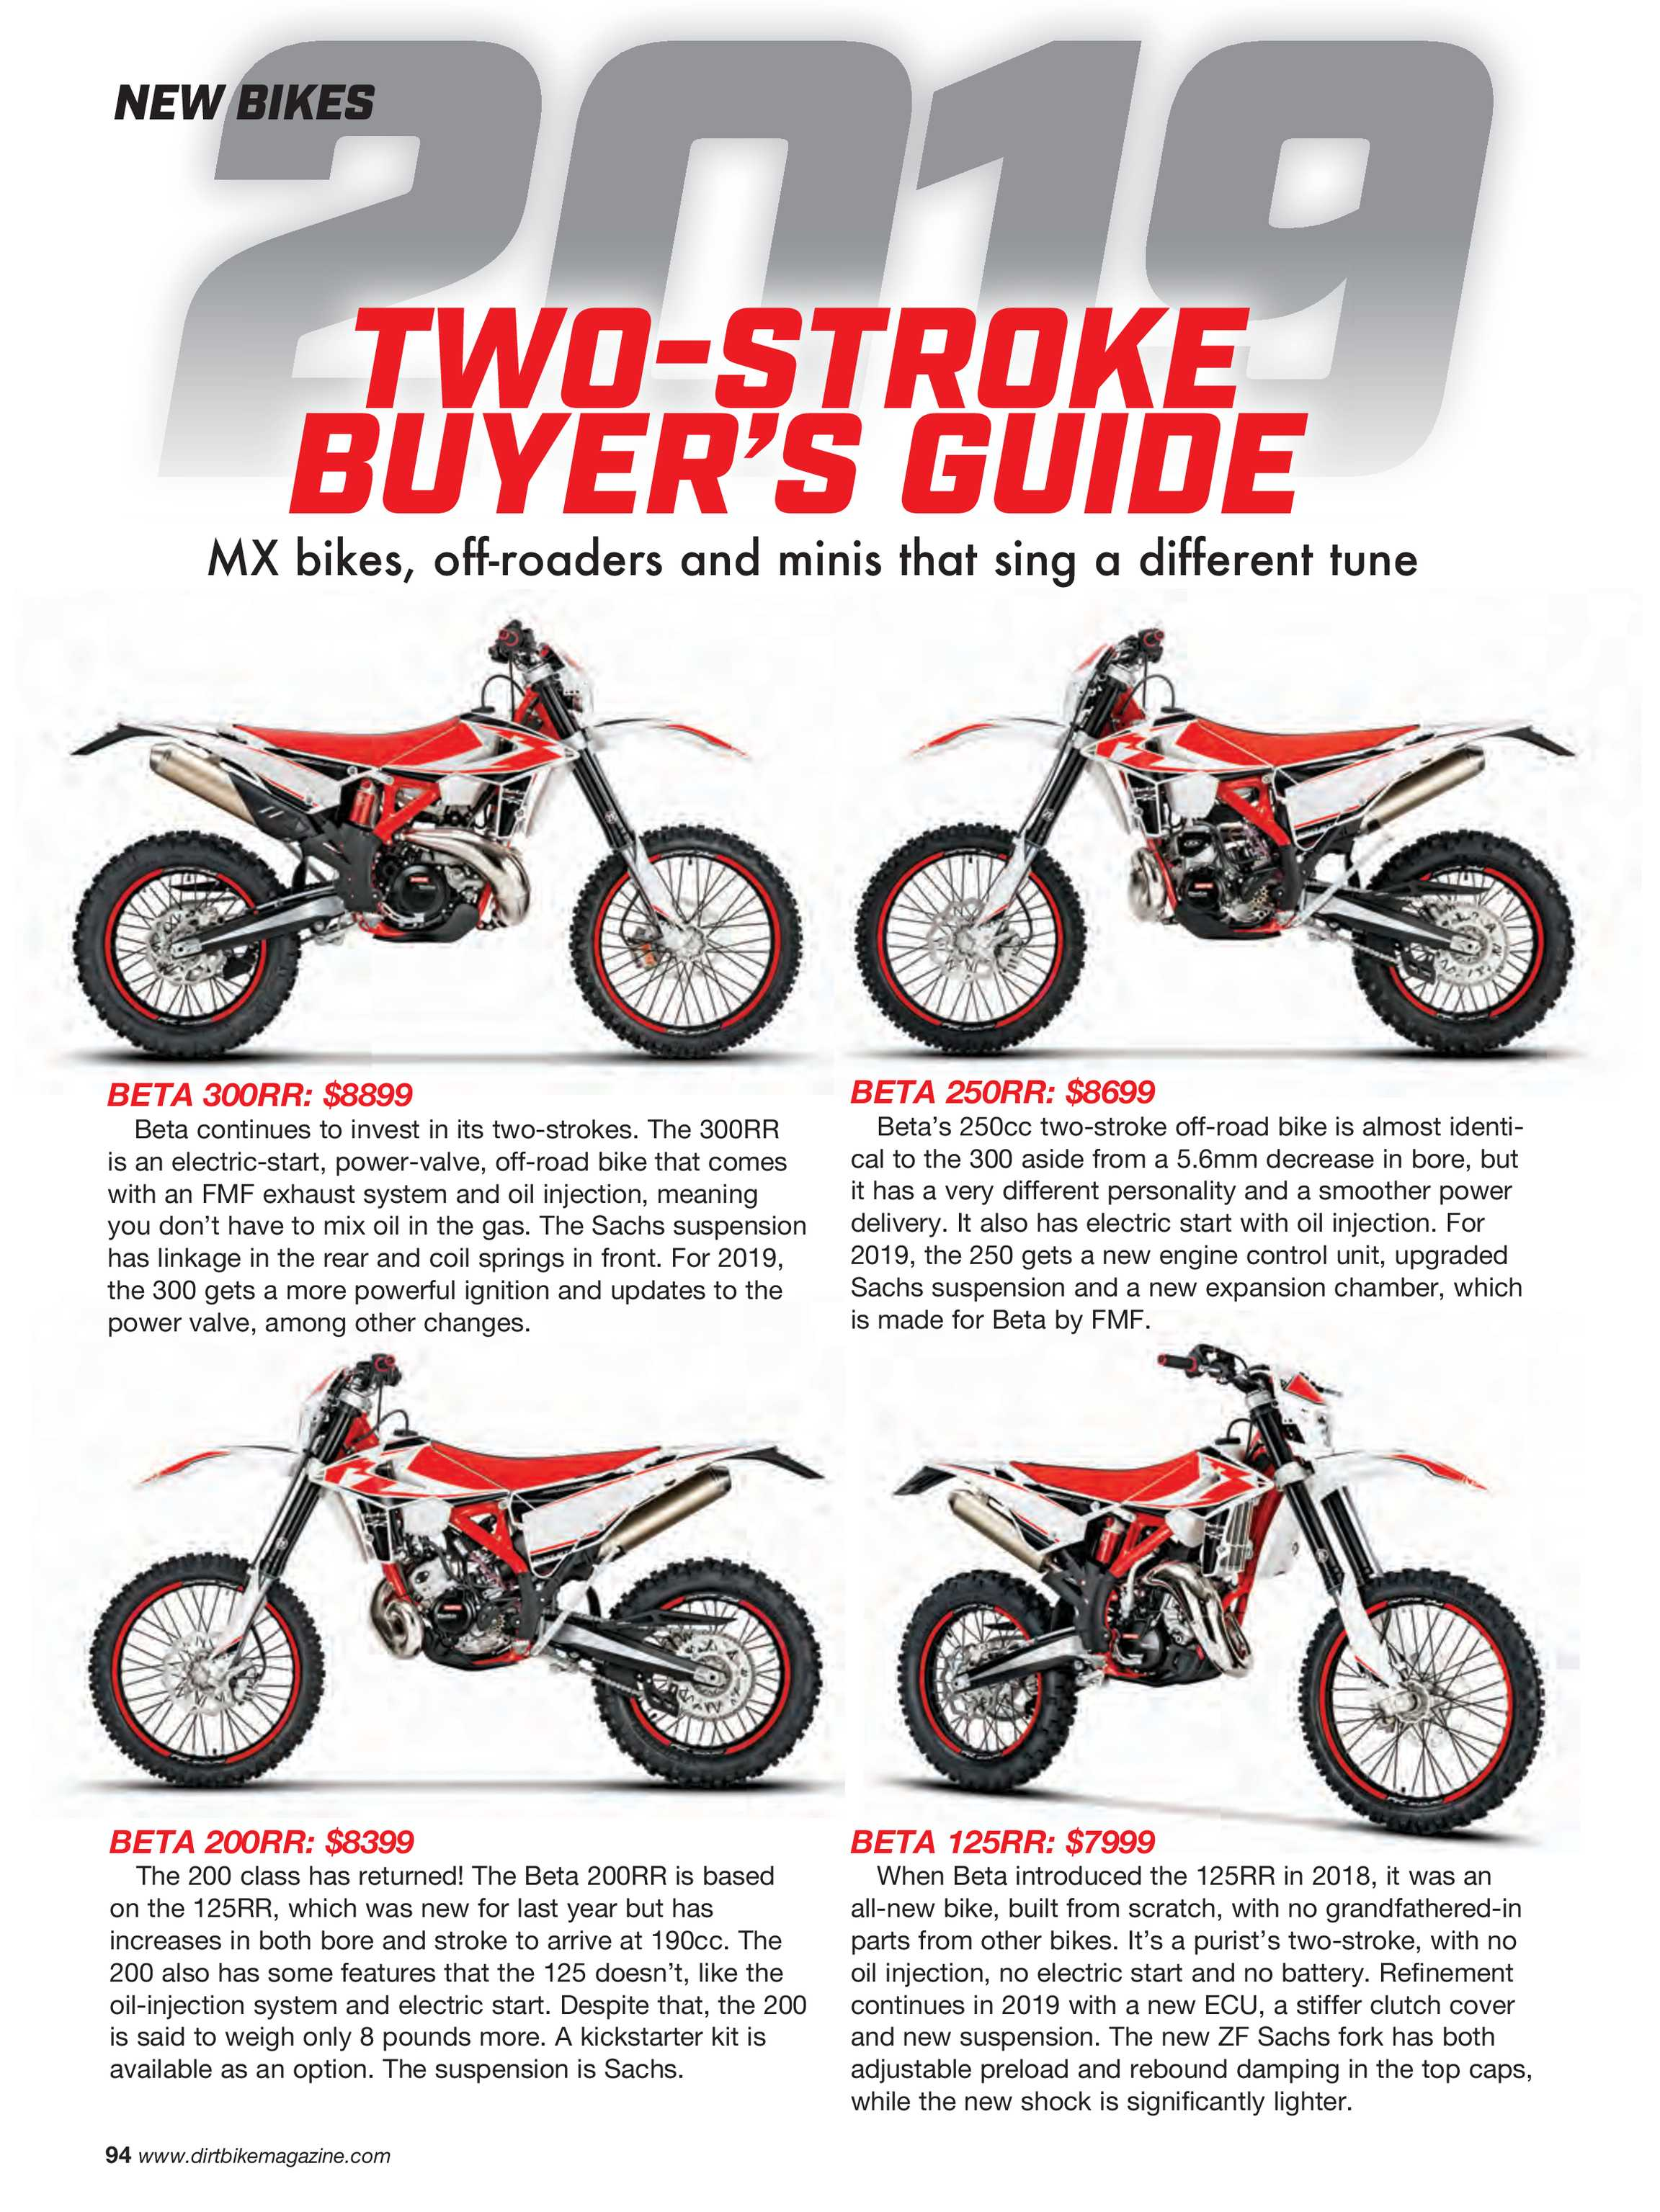 Dirt Bike Magazine - October 2018 - page 94